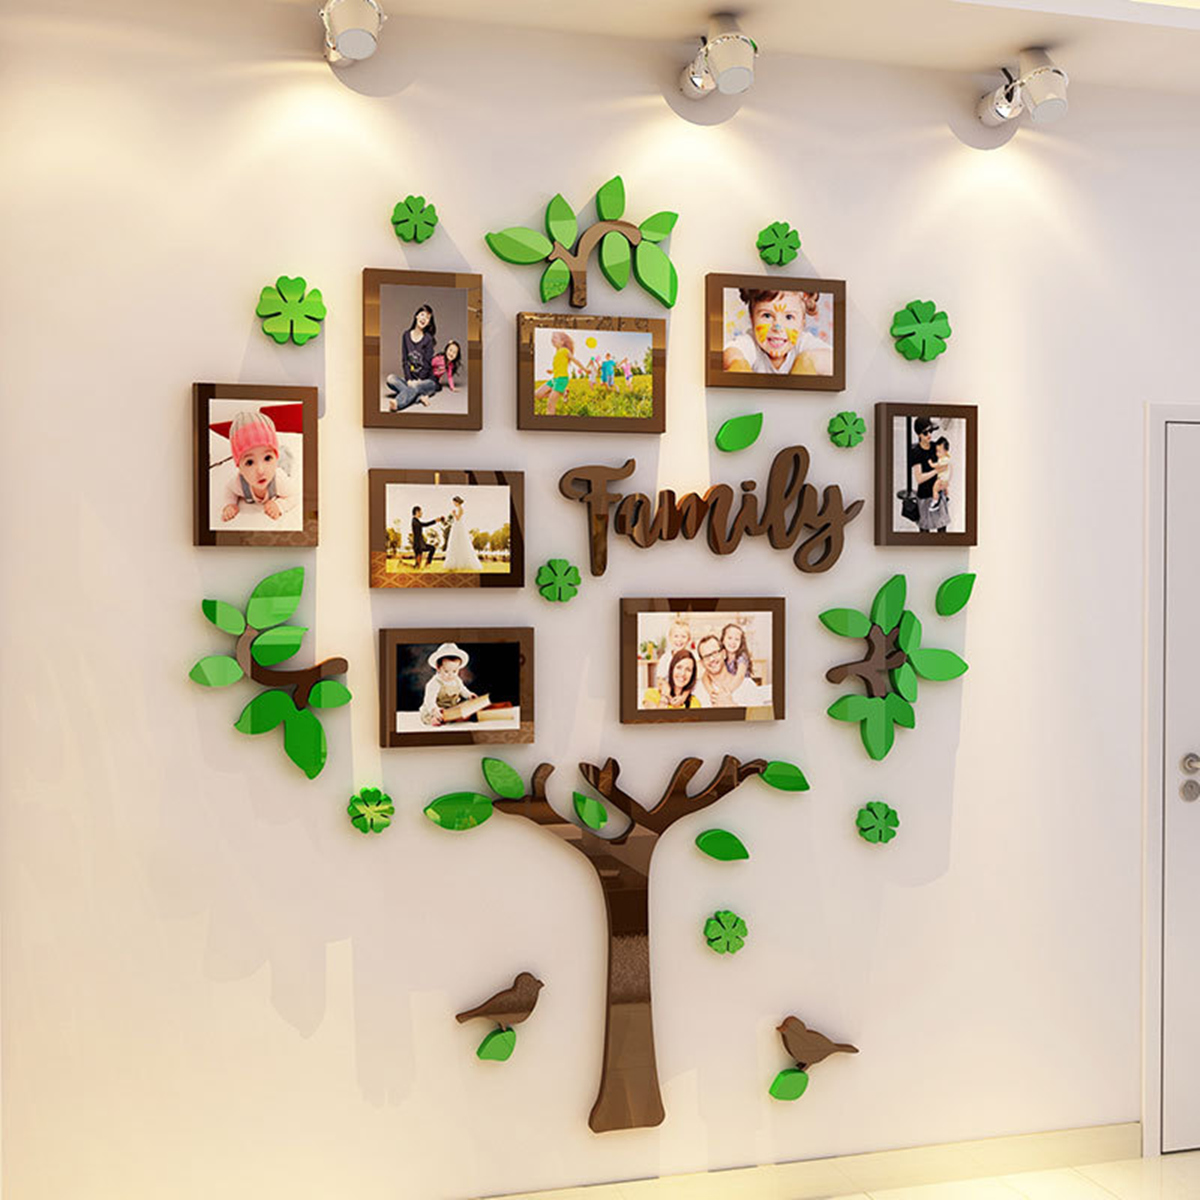 Family Tree Wall Art Picture Frame.Us 20 4 28 Off 3d Arcylic Diy Family Photo Frame Tree Wall Sticker Home Decor Living Room Bedroom Art Picture Frame Wall Decals Poster Photo In Wall